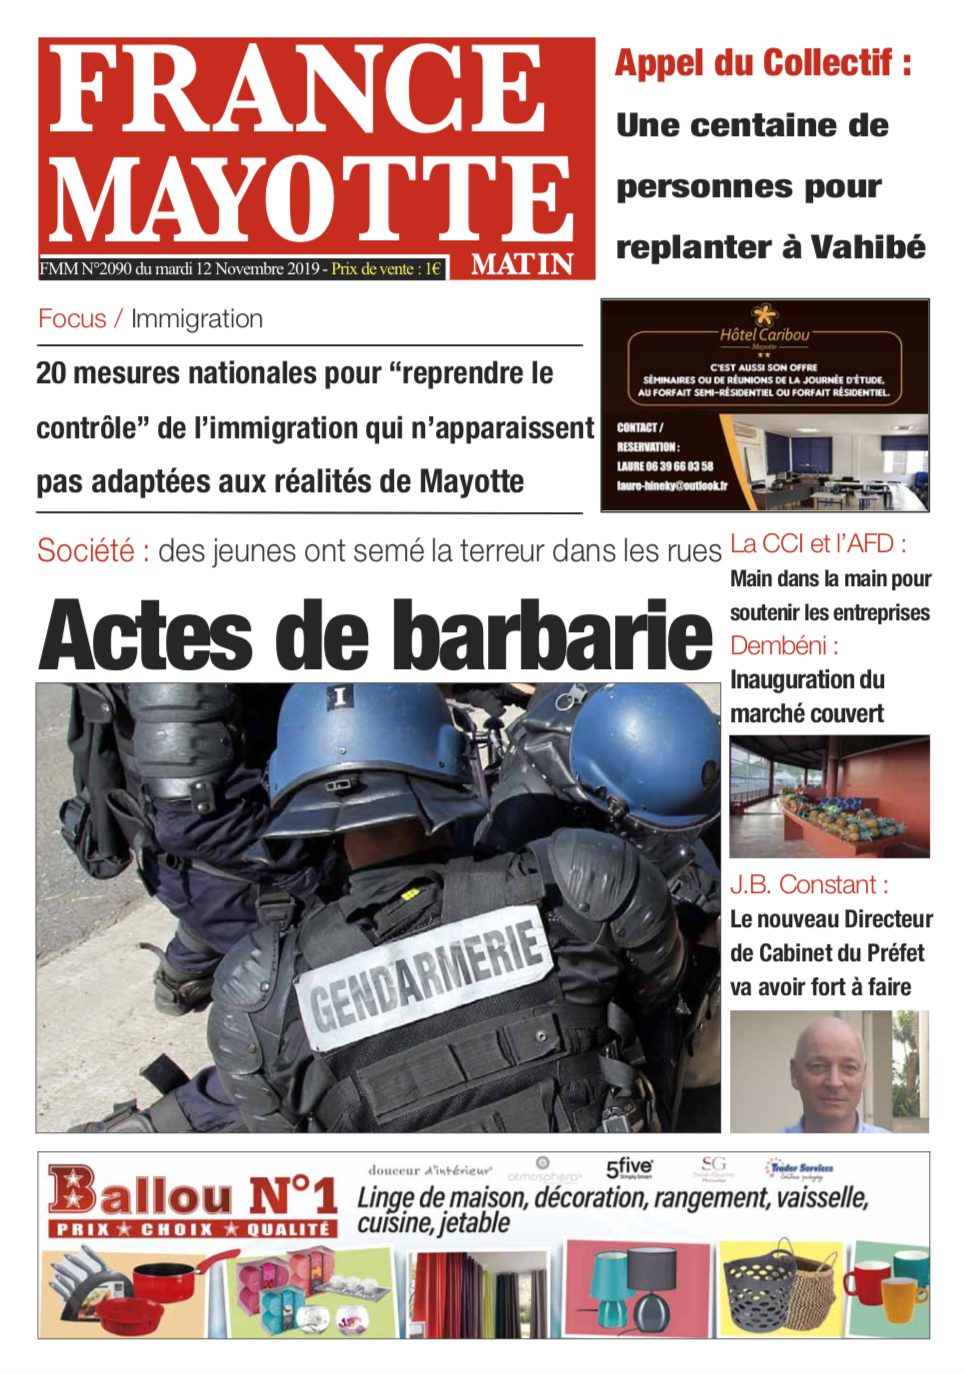 France Mayotte Mardi 12 novembre 2019